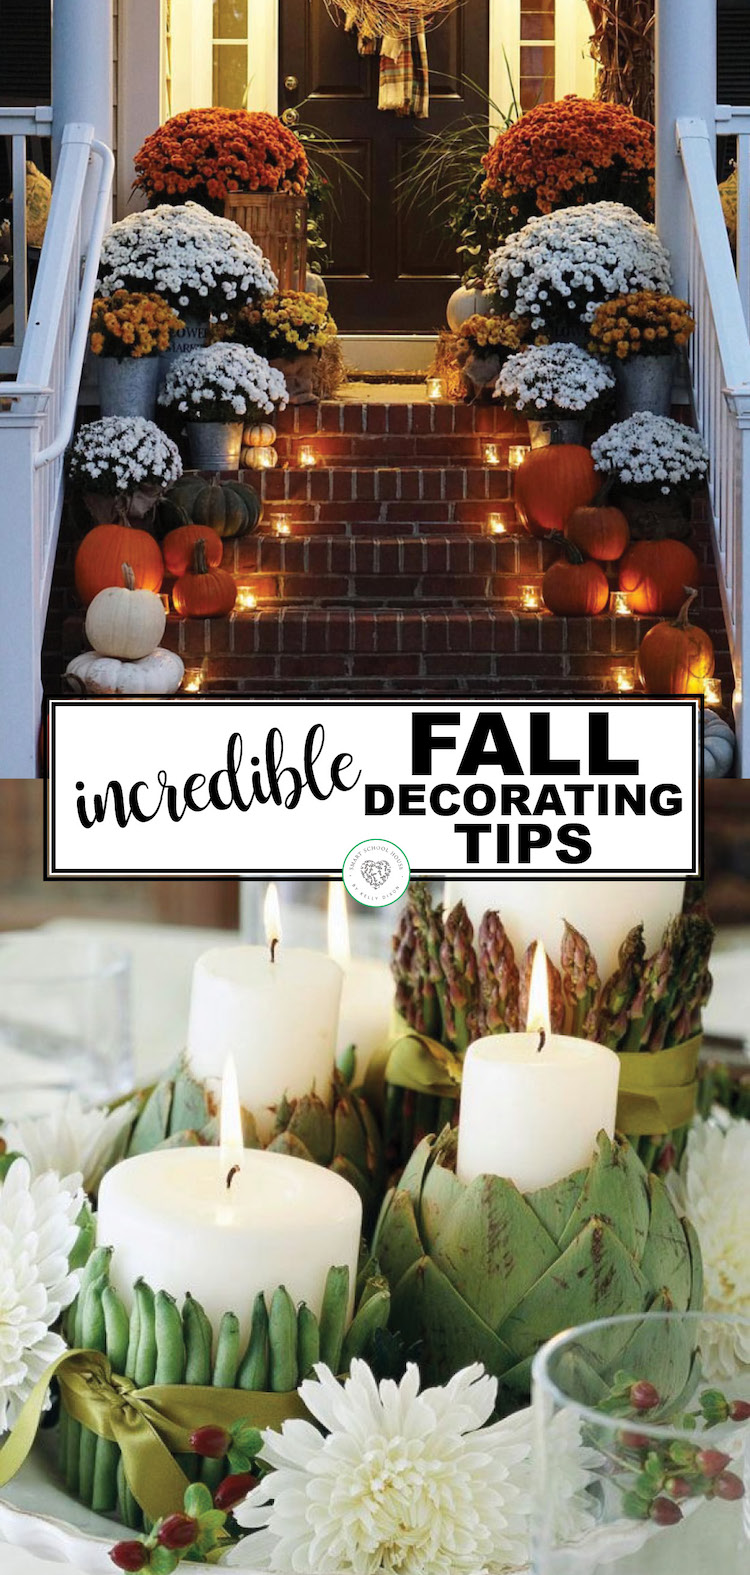 Incredible and gorgeous Fall decorating tips